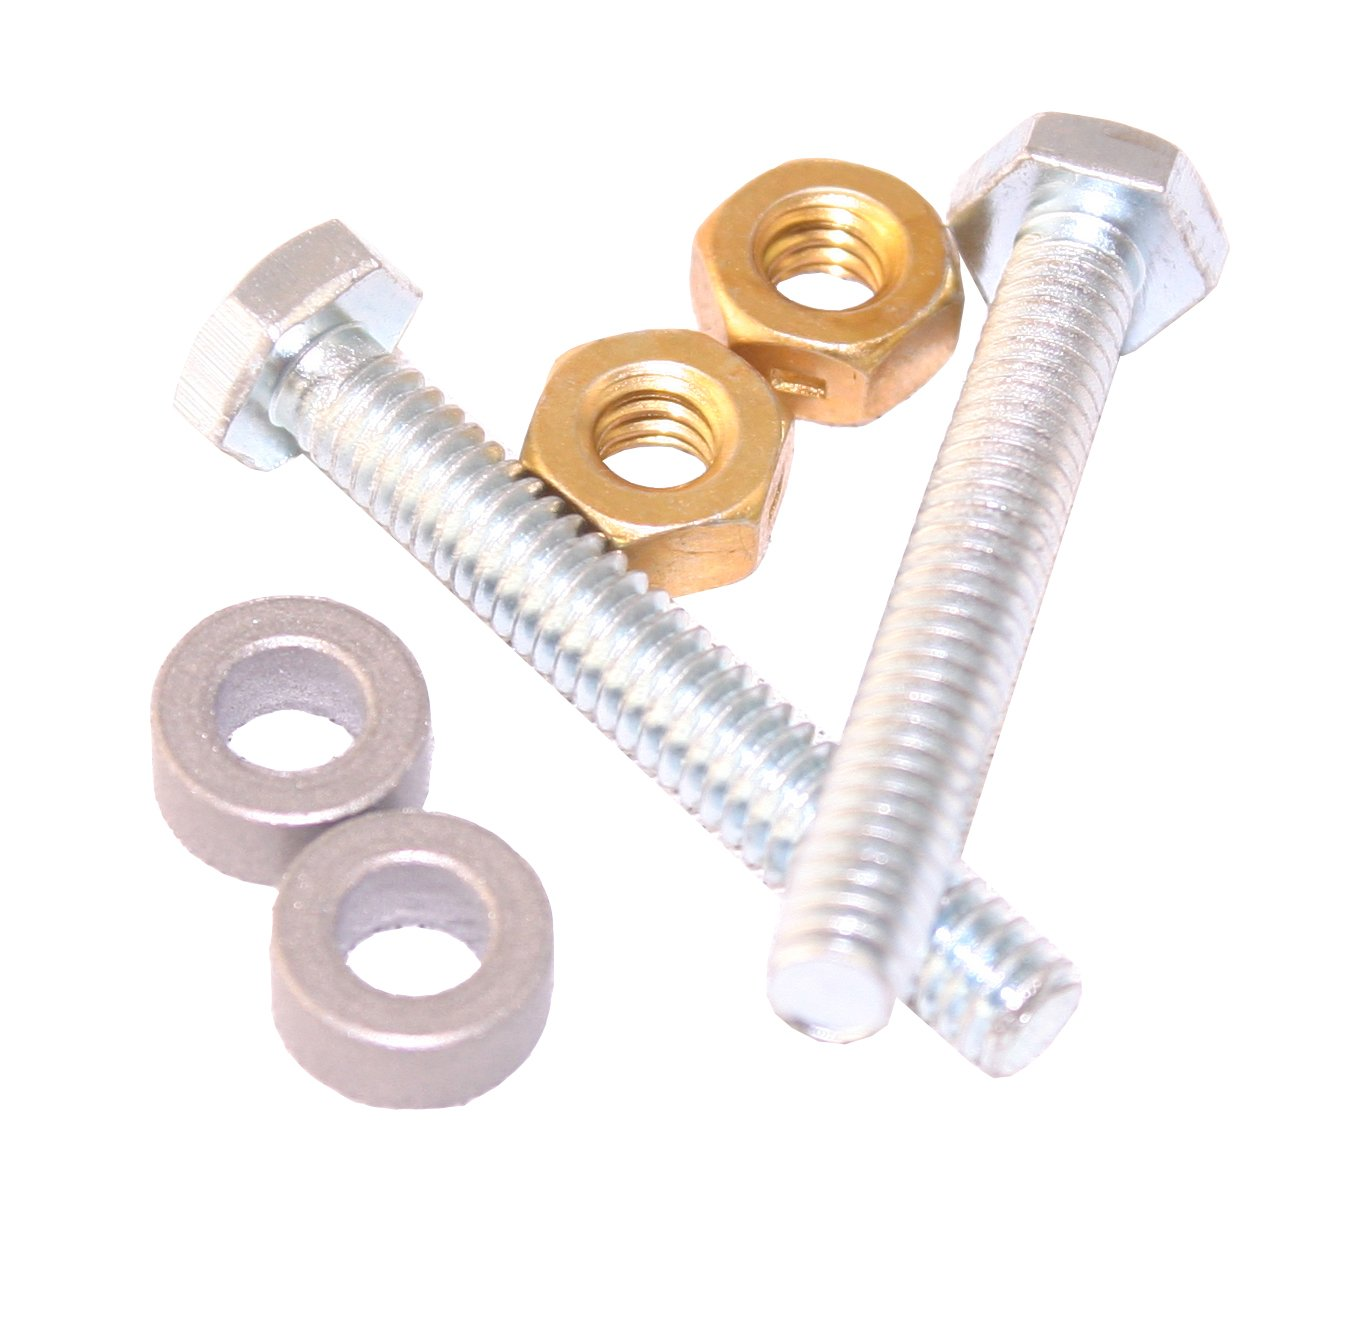 Murray 1501216MA Shear Bolt Kit for Snow Throwers